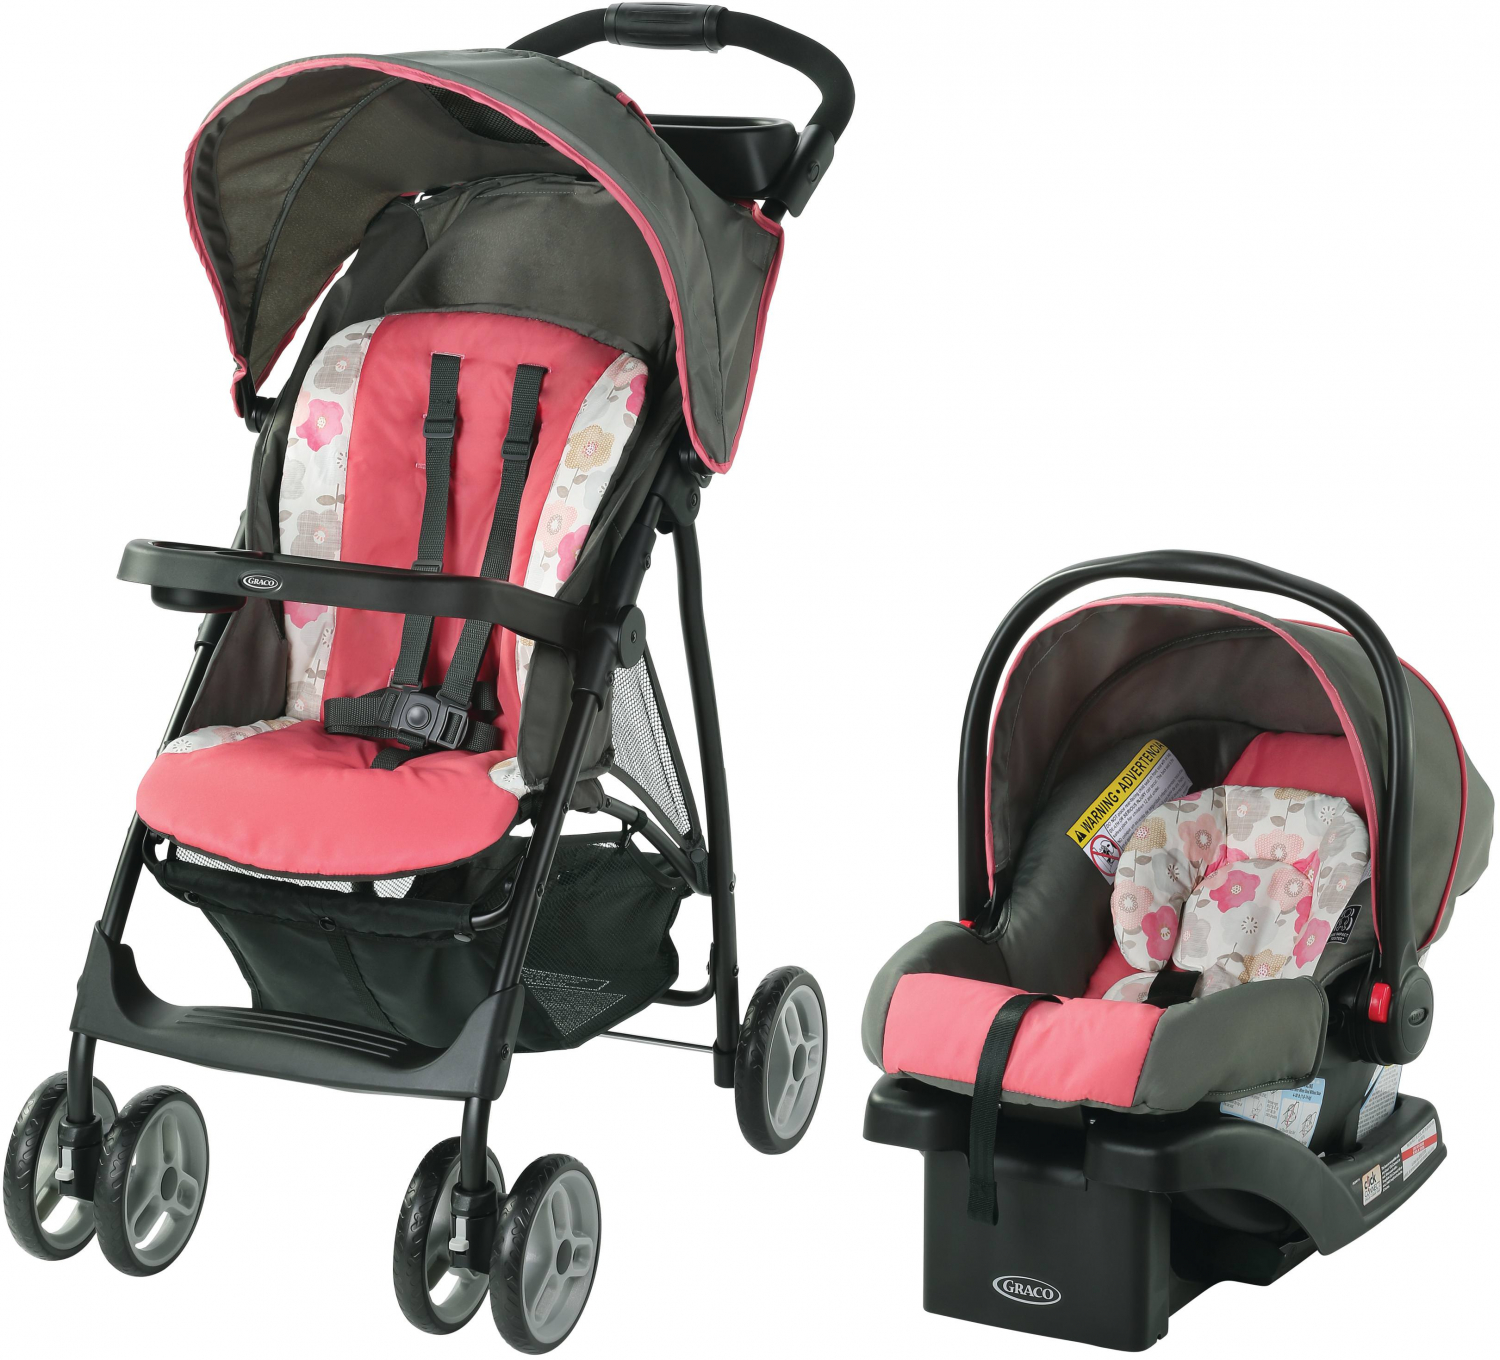 Details About Travel System Baby Girl Lightweight Infant Car Seat Stroller Combo Black